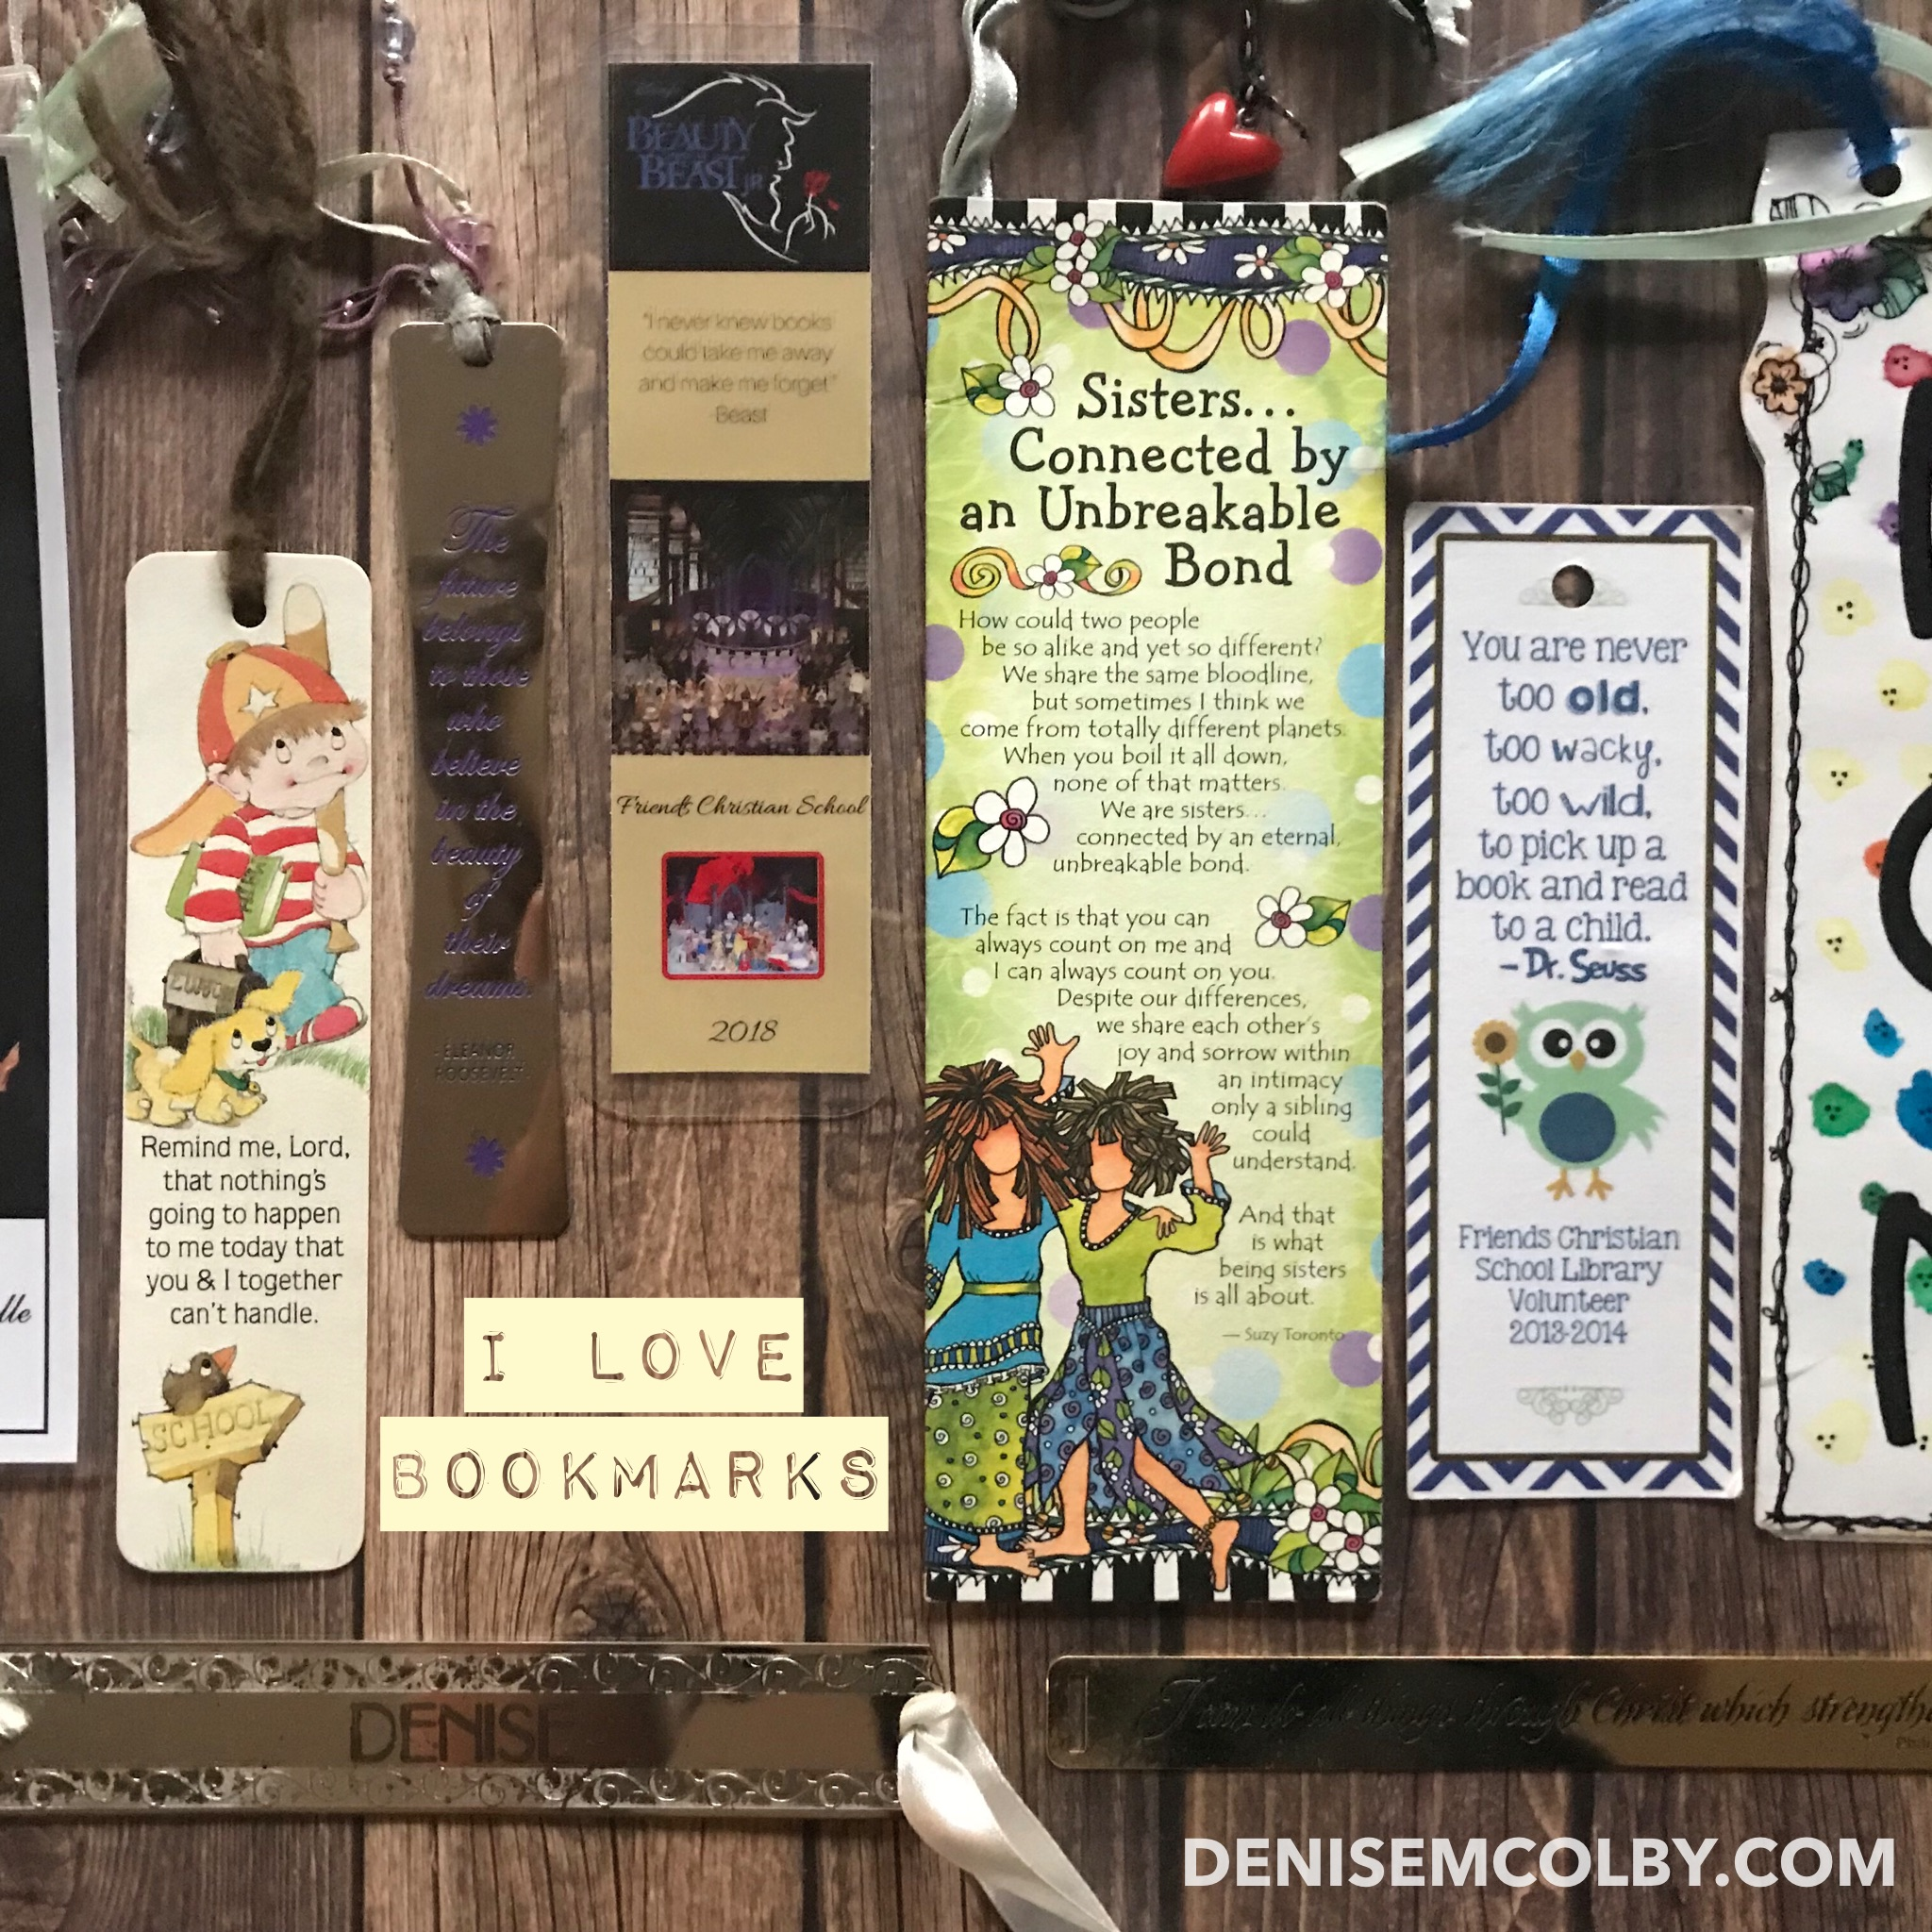 Photograph of bookmarks by Denise M. Colby used in social media post